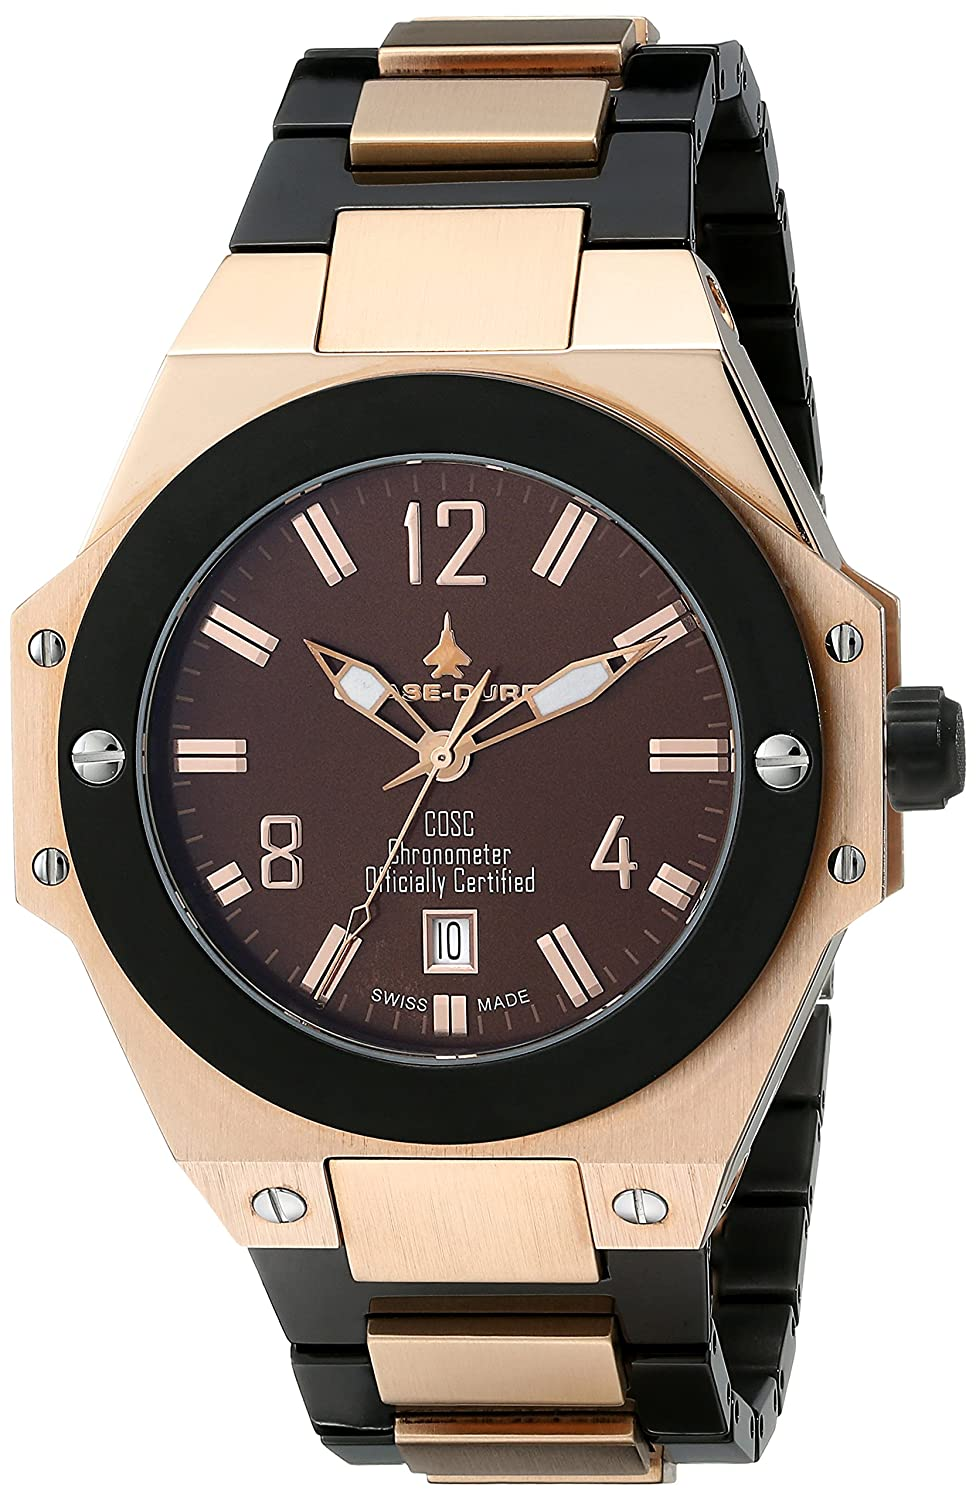 Amazon.com: Chase-Durer Men's 881.88NP-BRA Conquest Automatic Limited  Edition No. 2 18K Rose Gold-Plated Watch: Watches